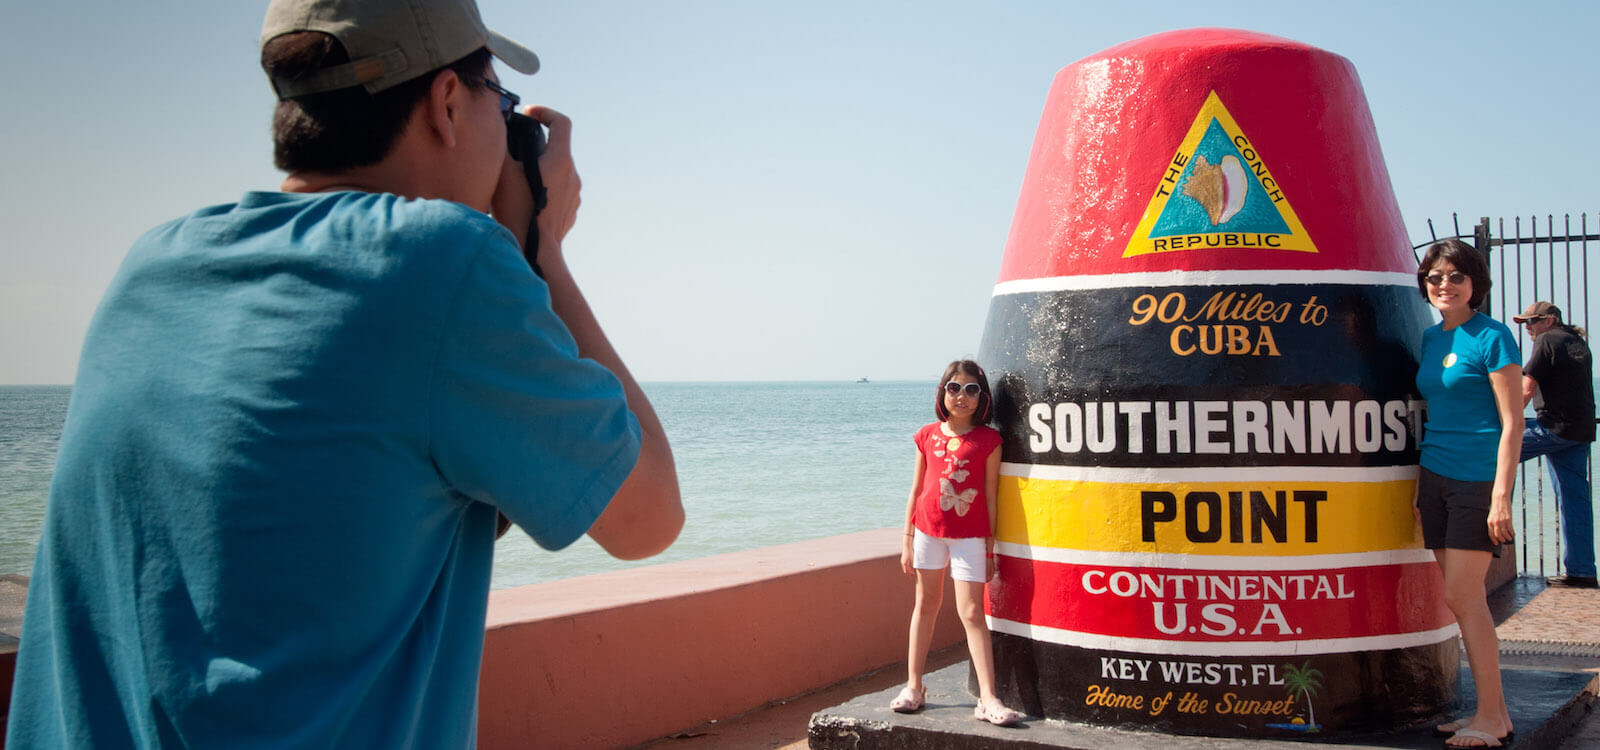 Snapping photos at Southernmost Point, 90 miles to Cuba, Key West, Florida, USA, Feb. 22, 2011. Photo by Debi Pittman Wilkey